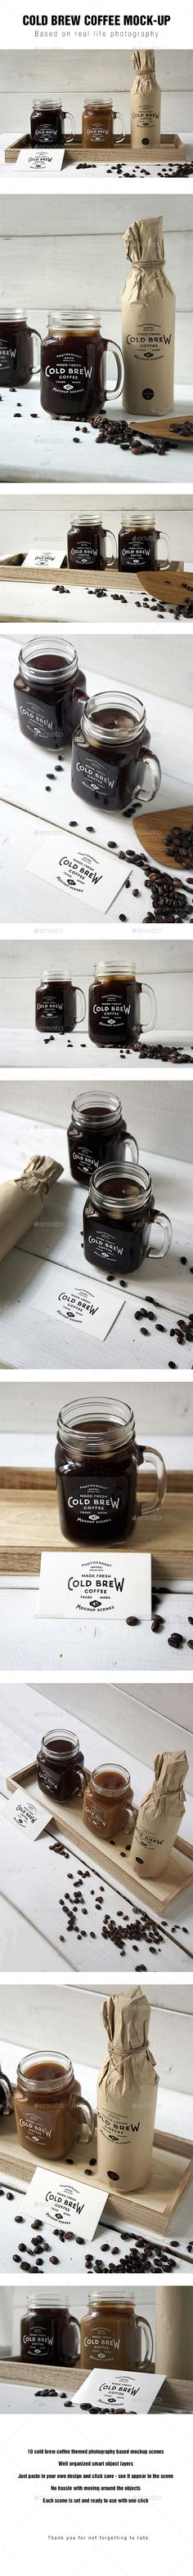 Cold Brew Coffee Mockup - Food and Drink Packaging